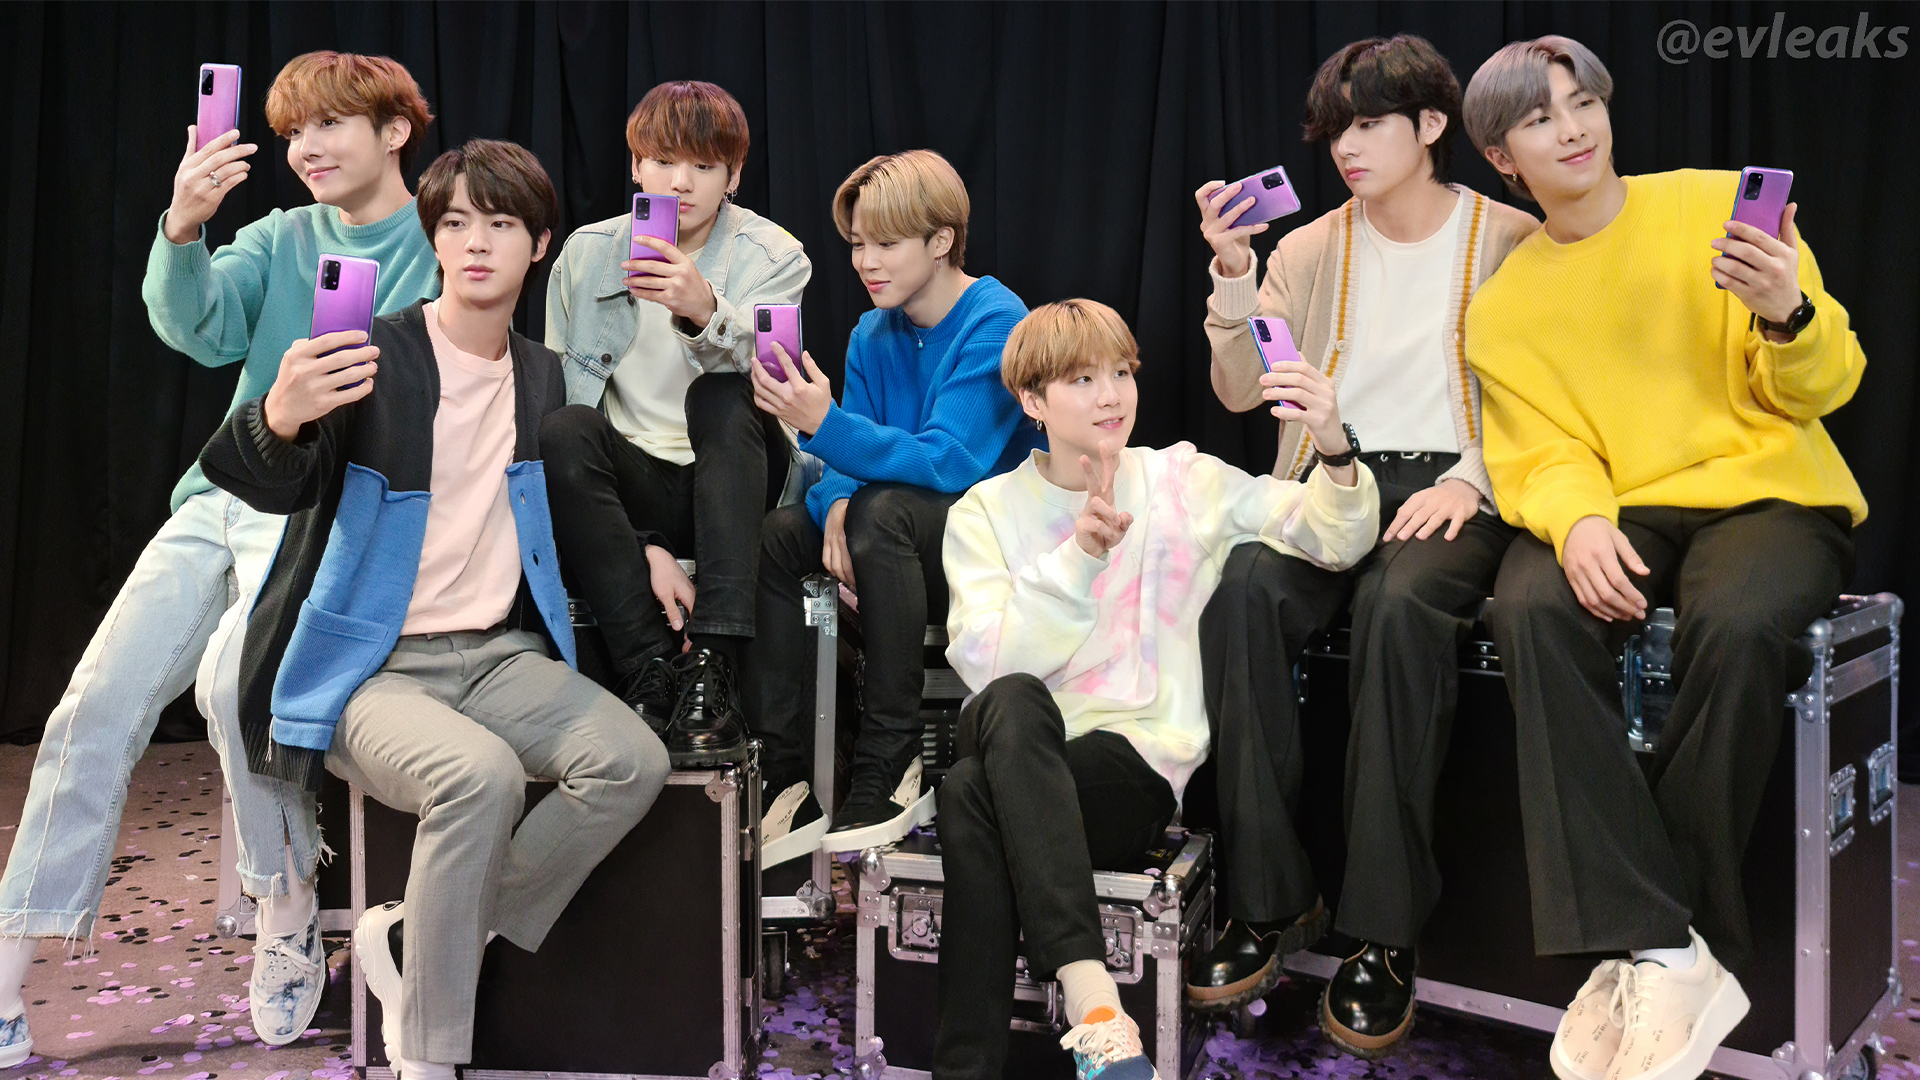 Samsung Galaxy S20 BTS Edition With BTS Members